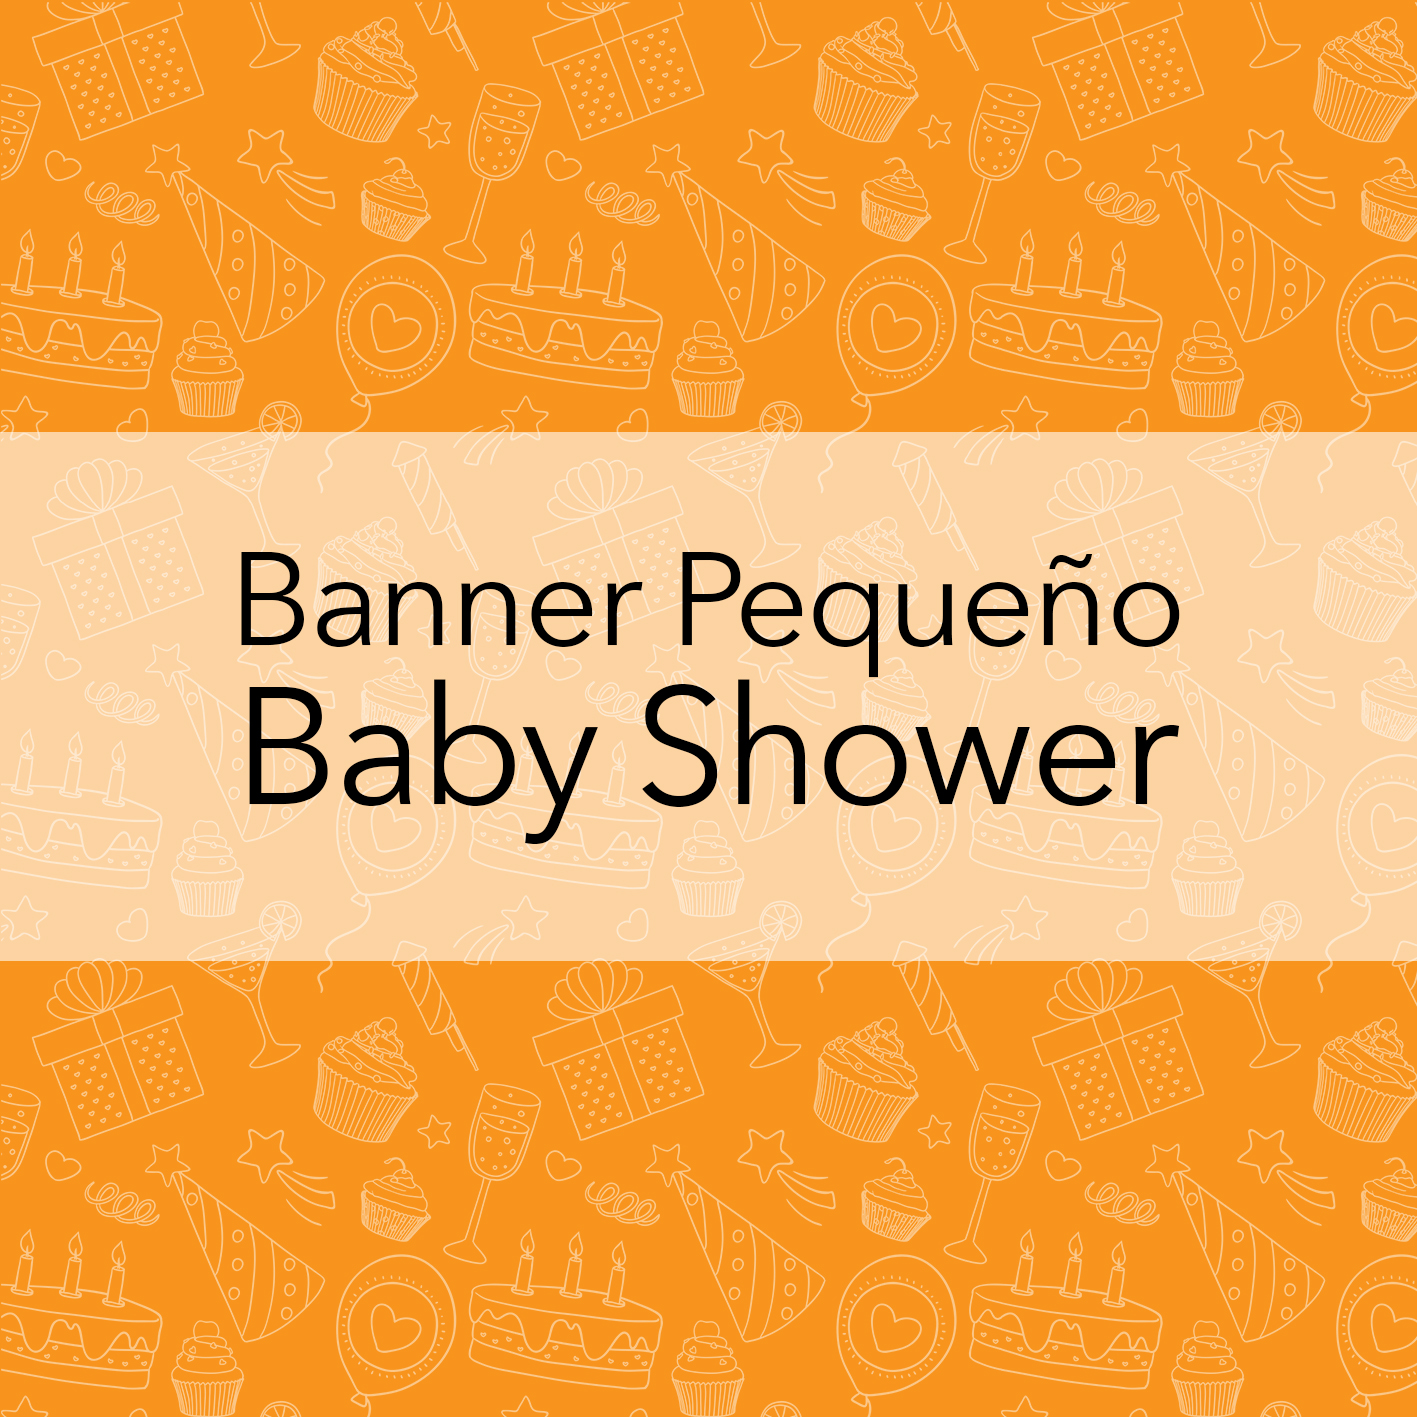 BANNERS PEQUEÑOS - BABY SHOWER